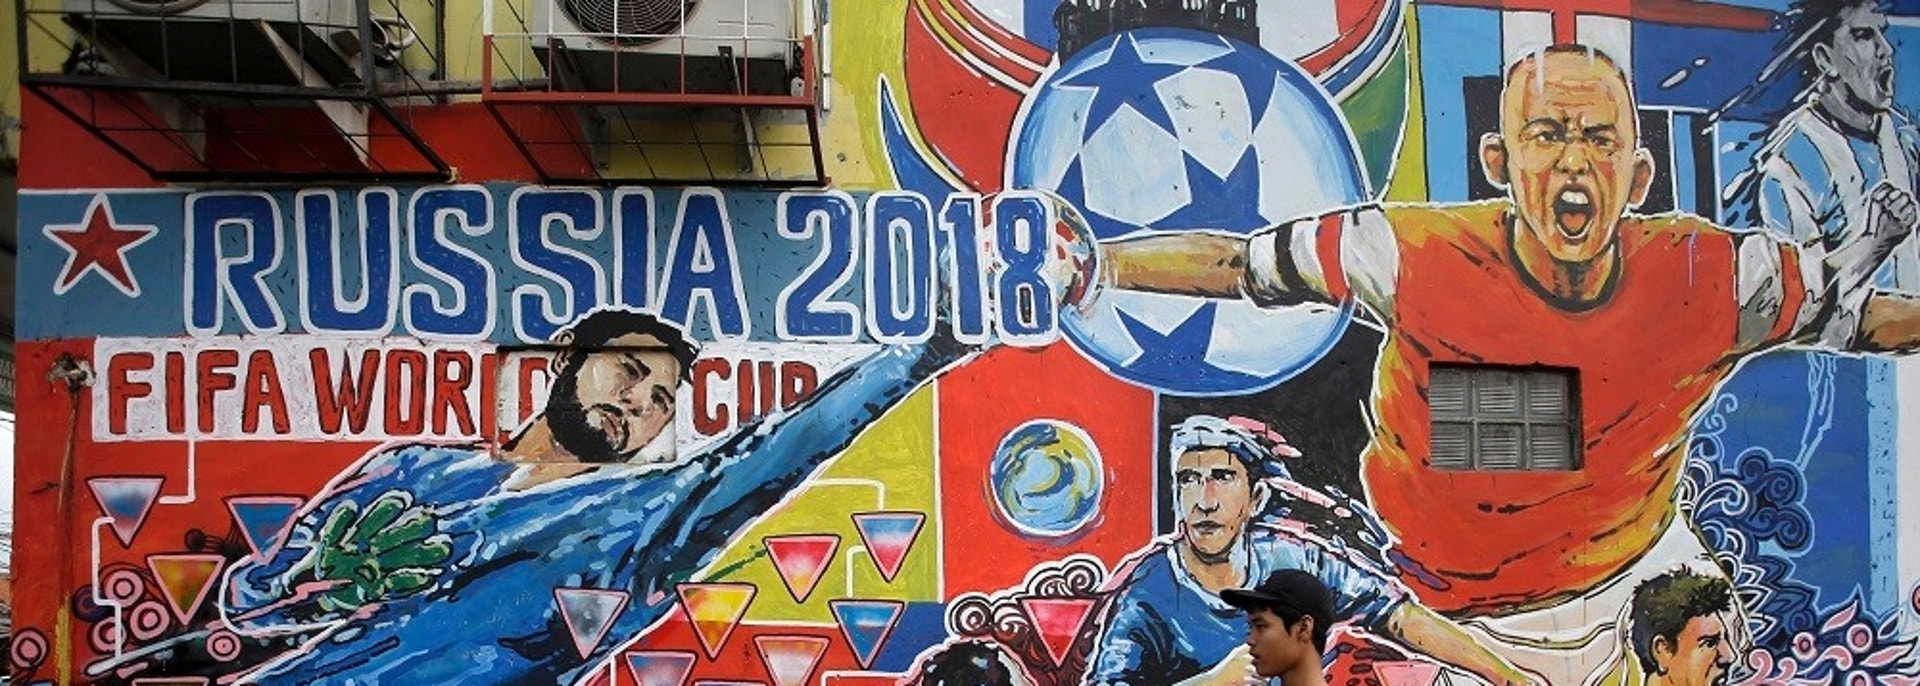 Boys walk past a mural of soccer players in action to advertise the upcoming the 2018 World Cup soccer tournament in Russia on the outskirts of Jakarta, Indonesia. Tuesday, June 12, 2018. (AP Photo/Tatan Syuflana)